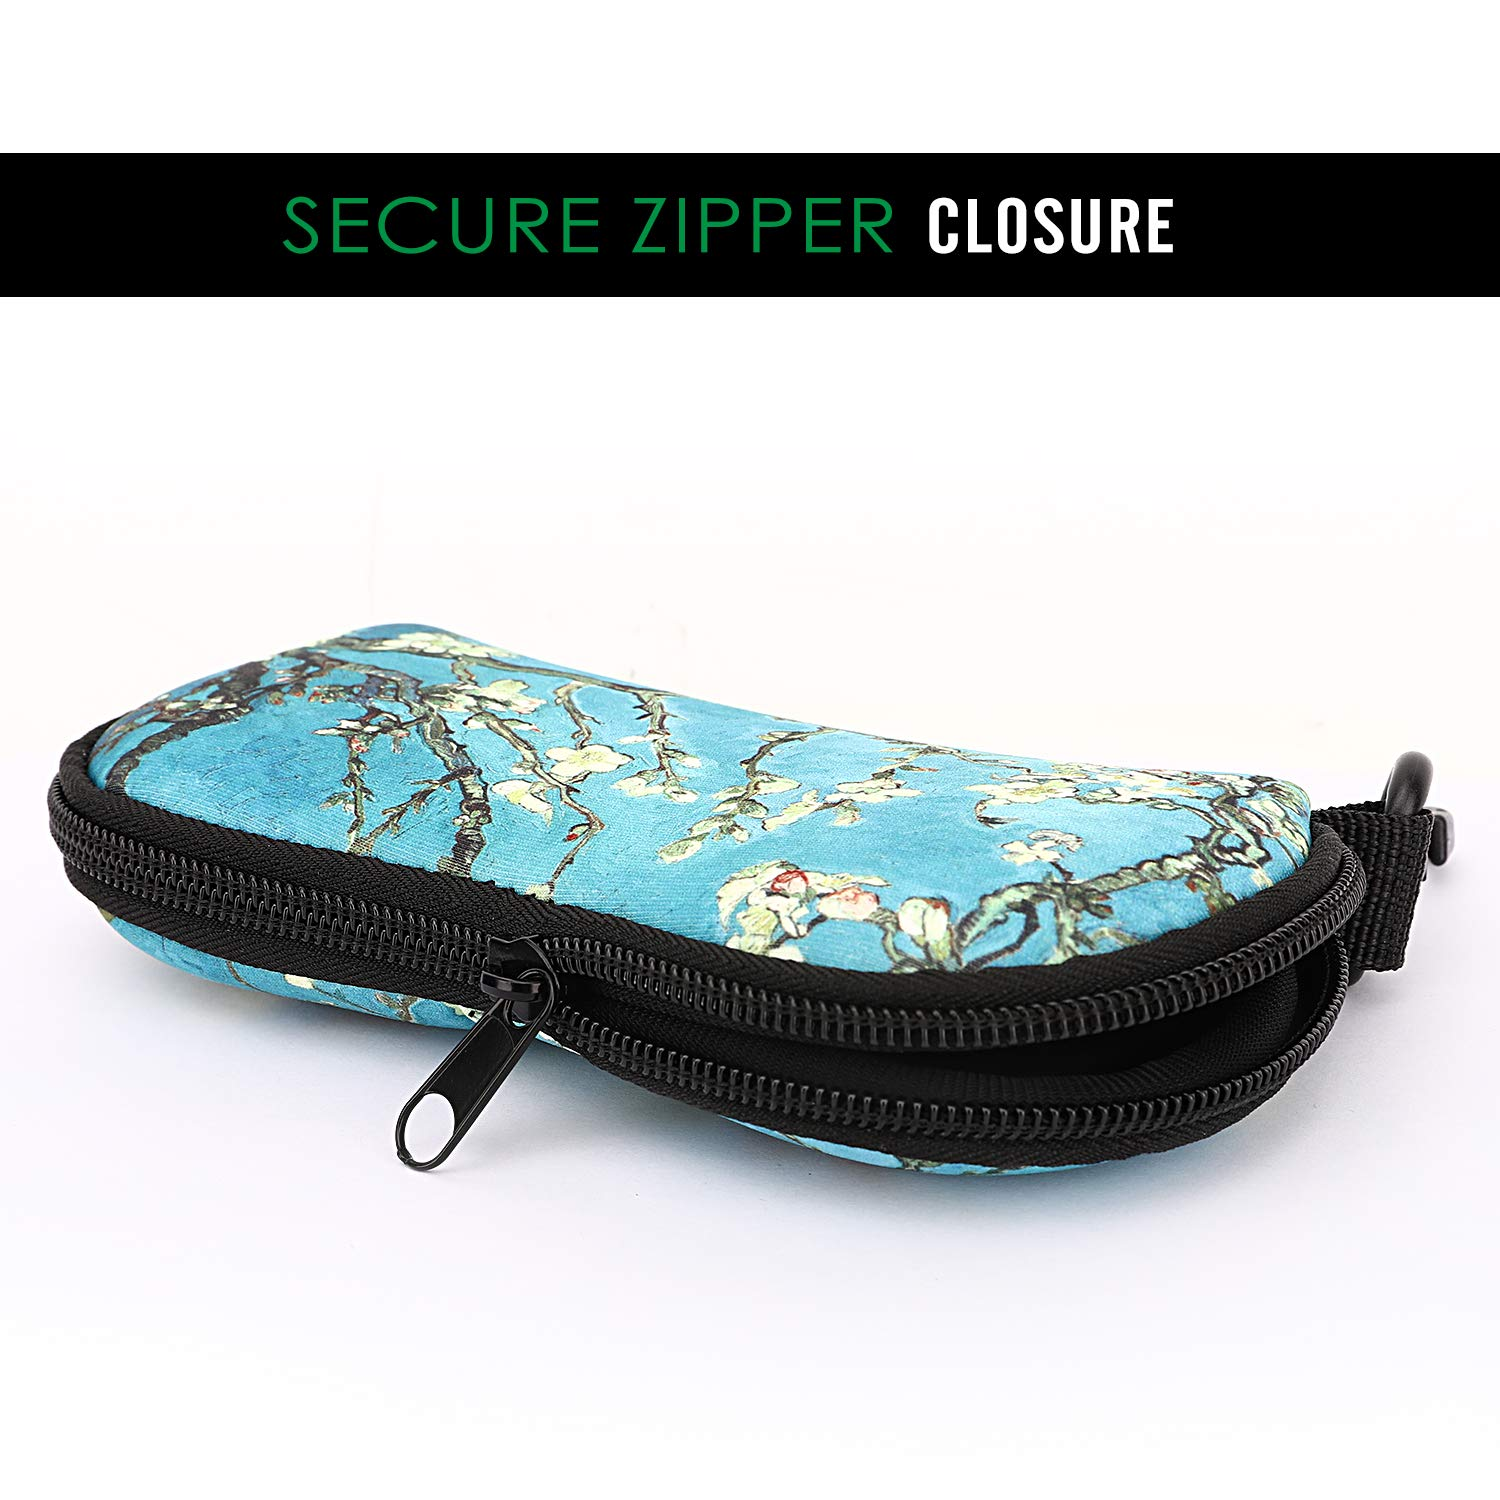 Portable Travel Sunglasses Case Pouch Carrying Protective Neoprene Eyewear Bag Box with Belt Clip for Men and Women MoKo Eyeglasses Case Soft, Ultra Lightweight